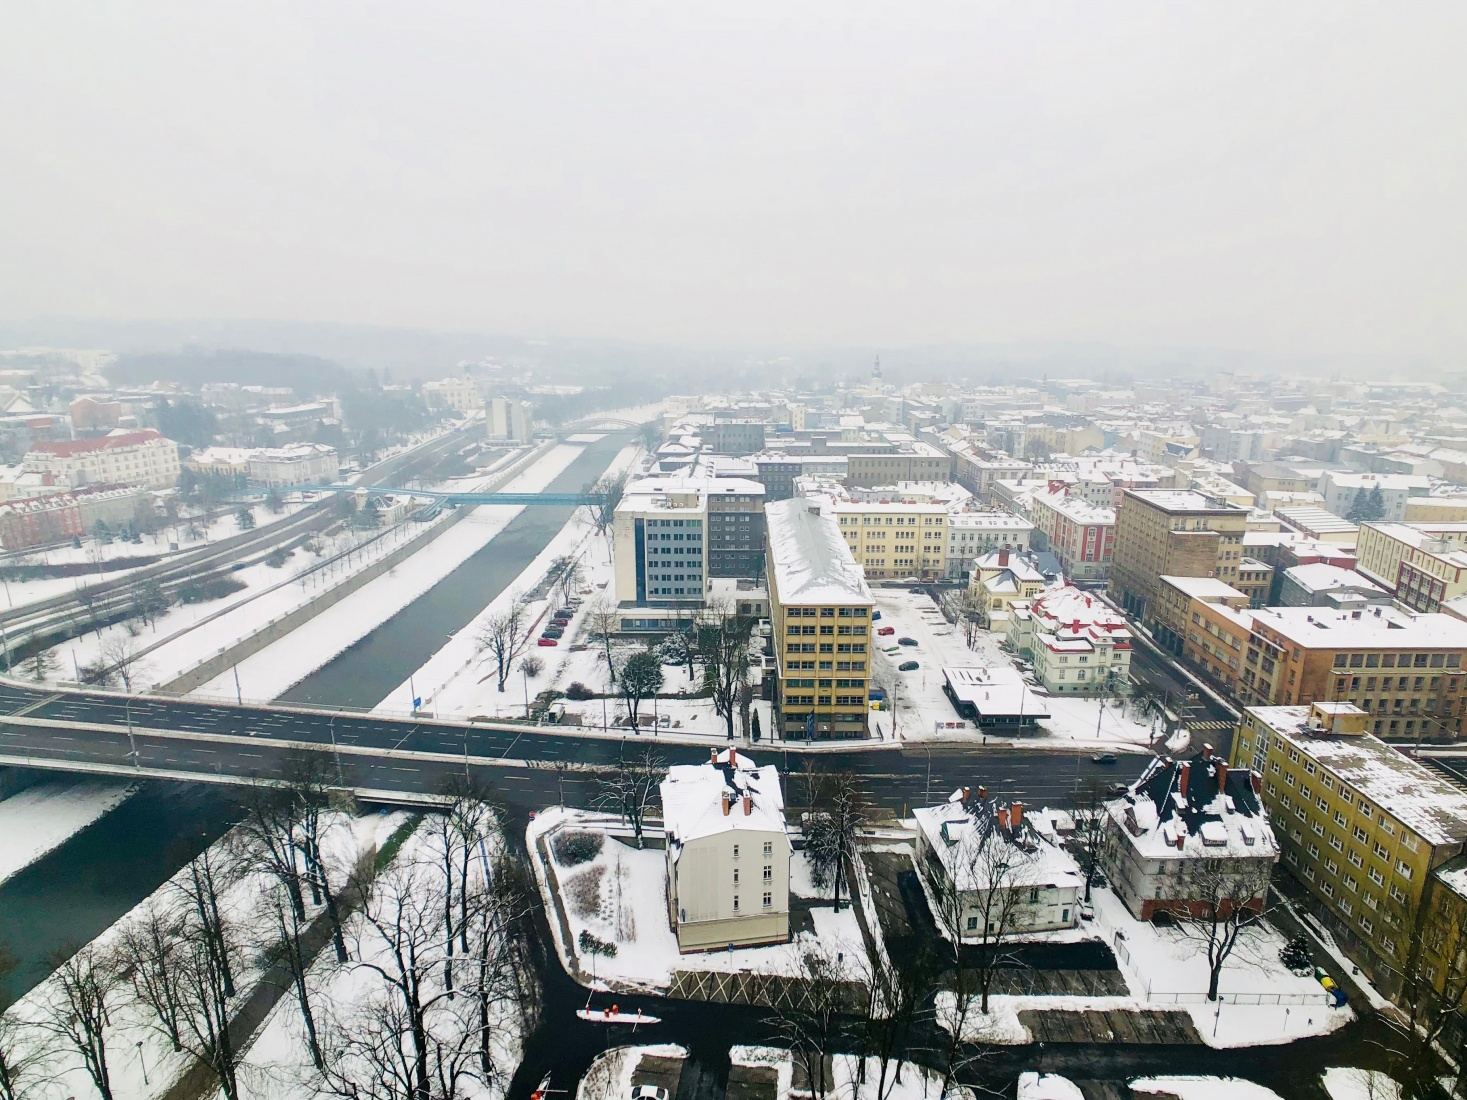 Looking toward the Ostrava, Czech Republic, historic core in the distance from the New Town Hall tower.